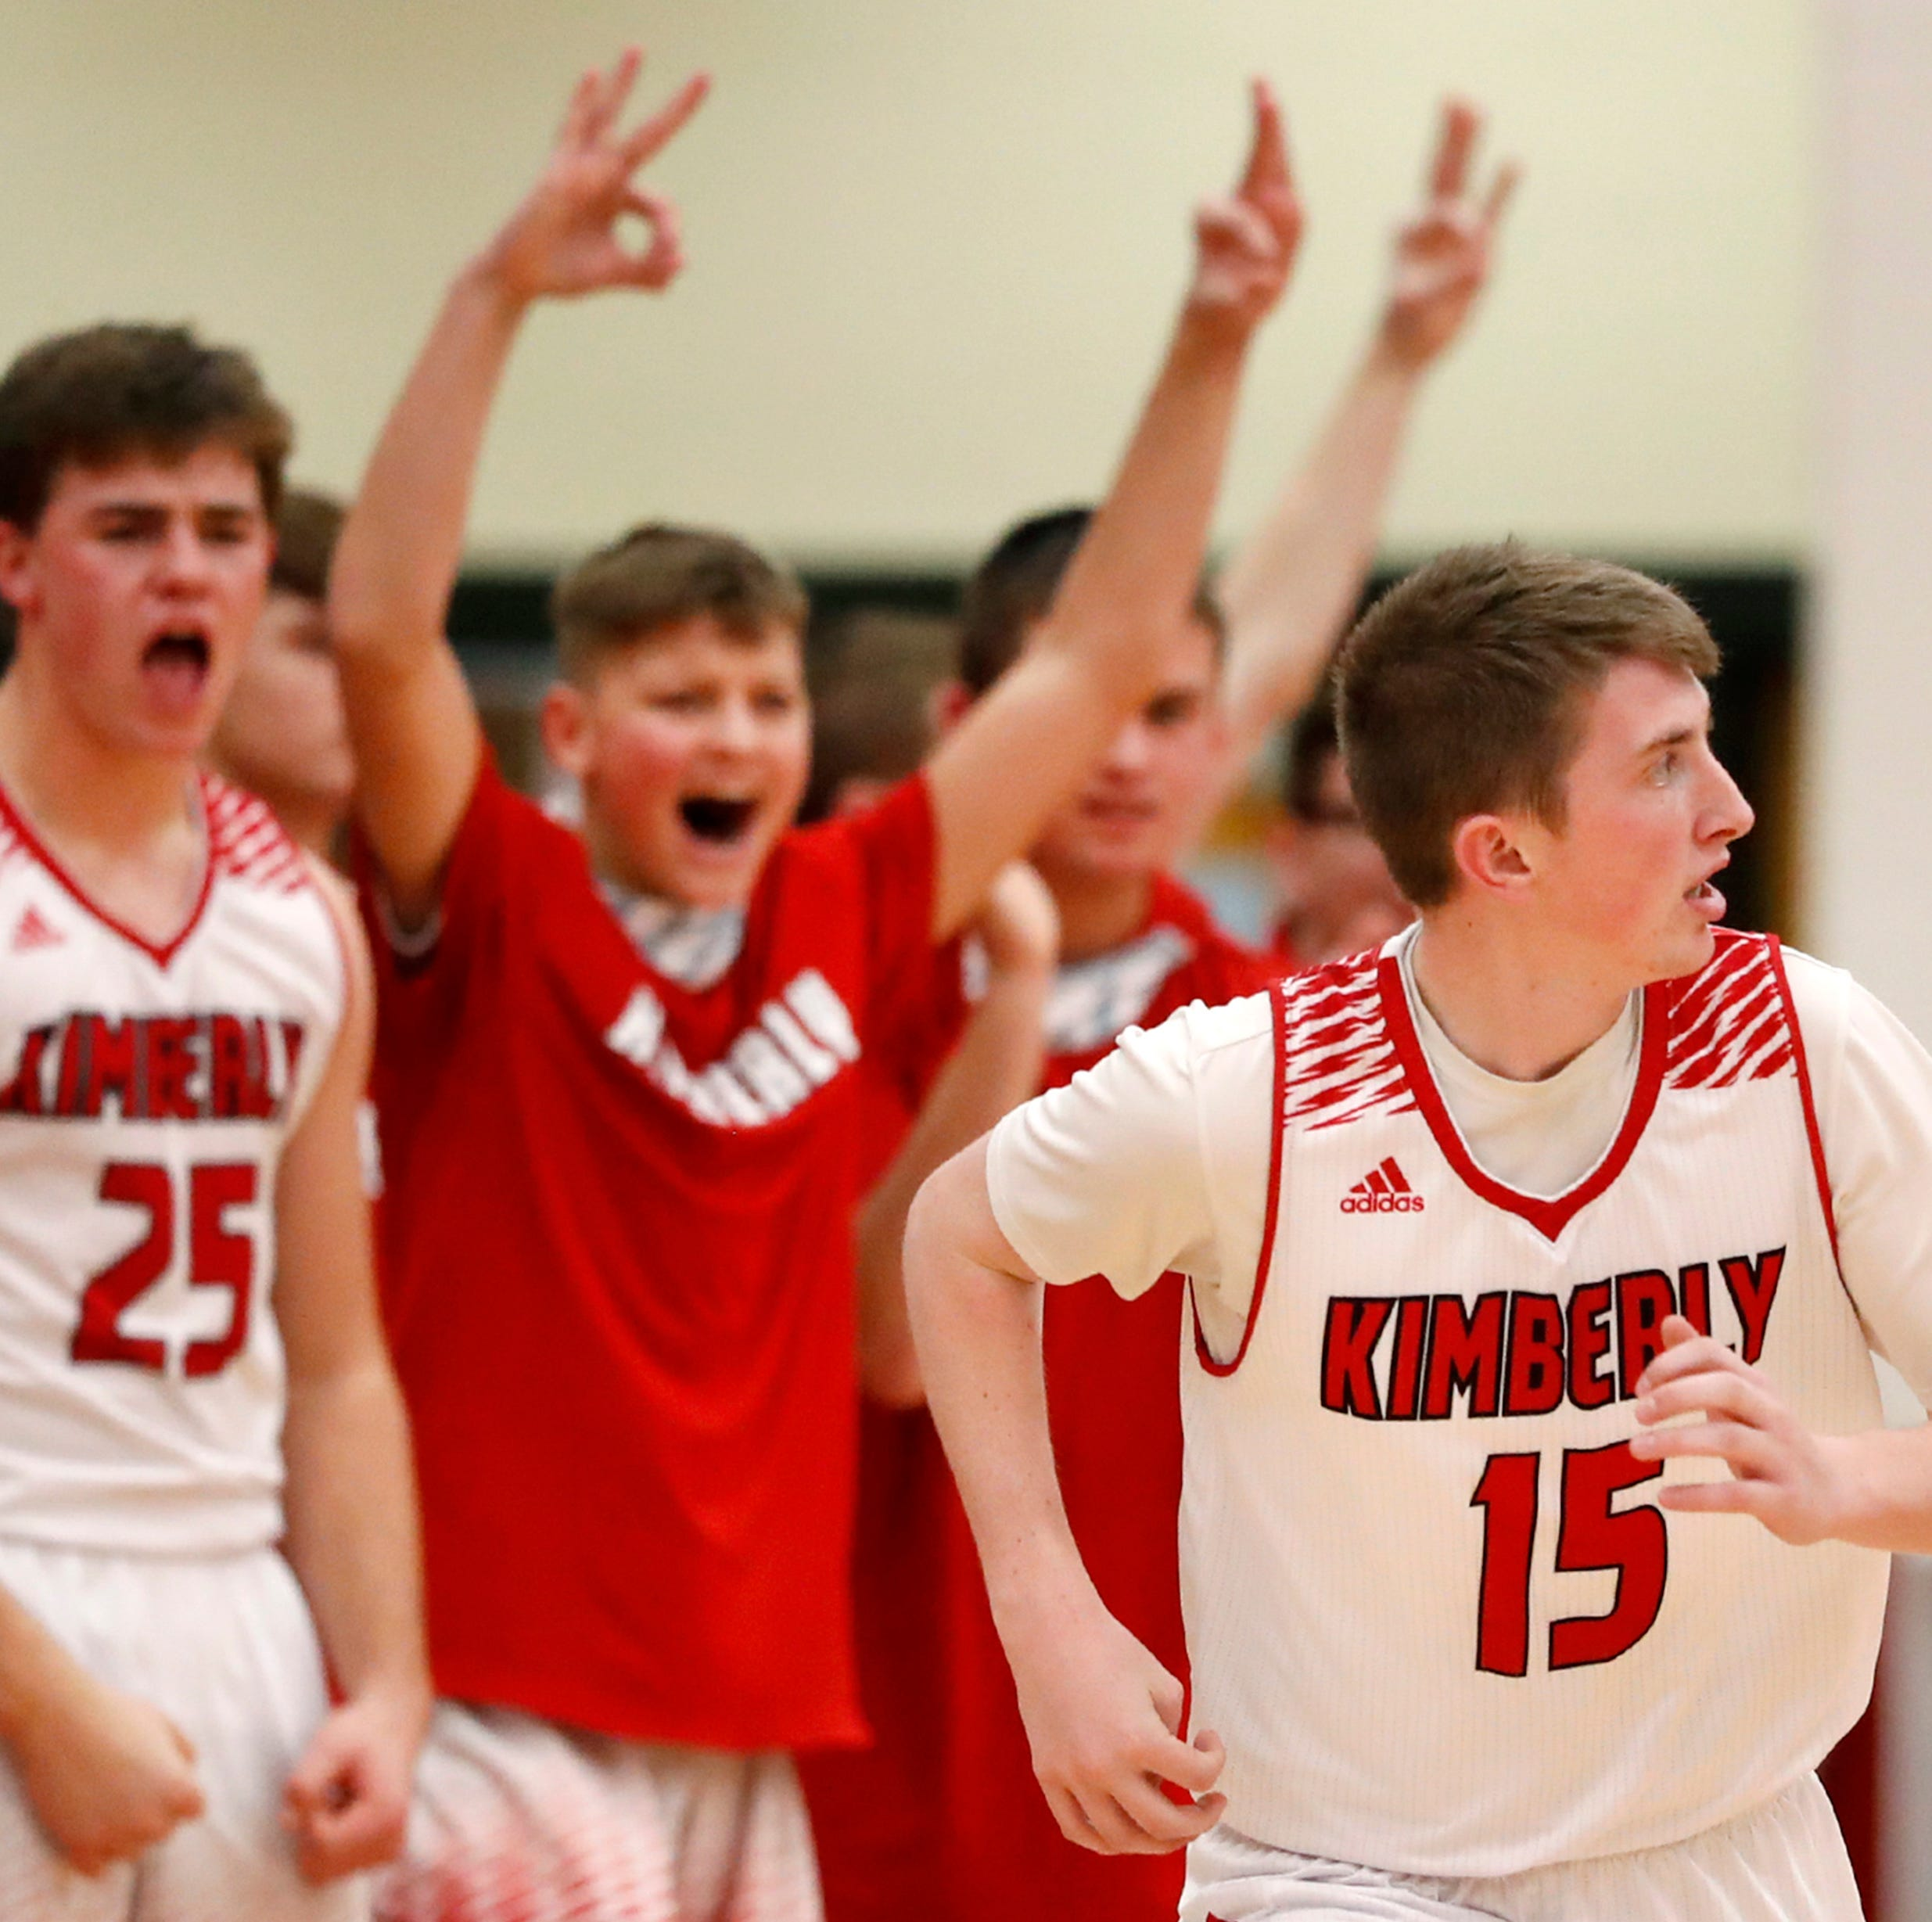 Kimberly, Wrightstown boys earn top seeds in WIAA playoff brackets